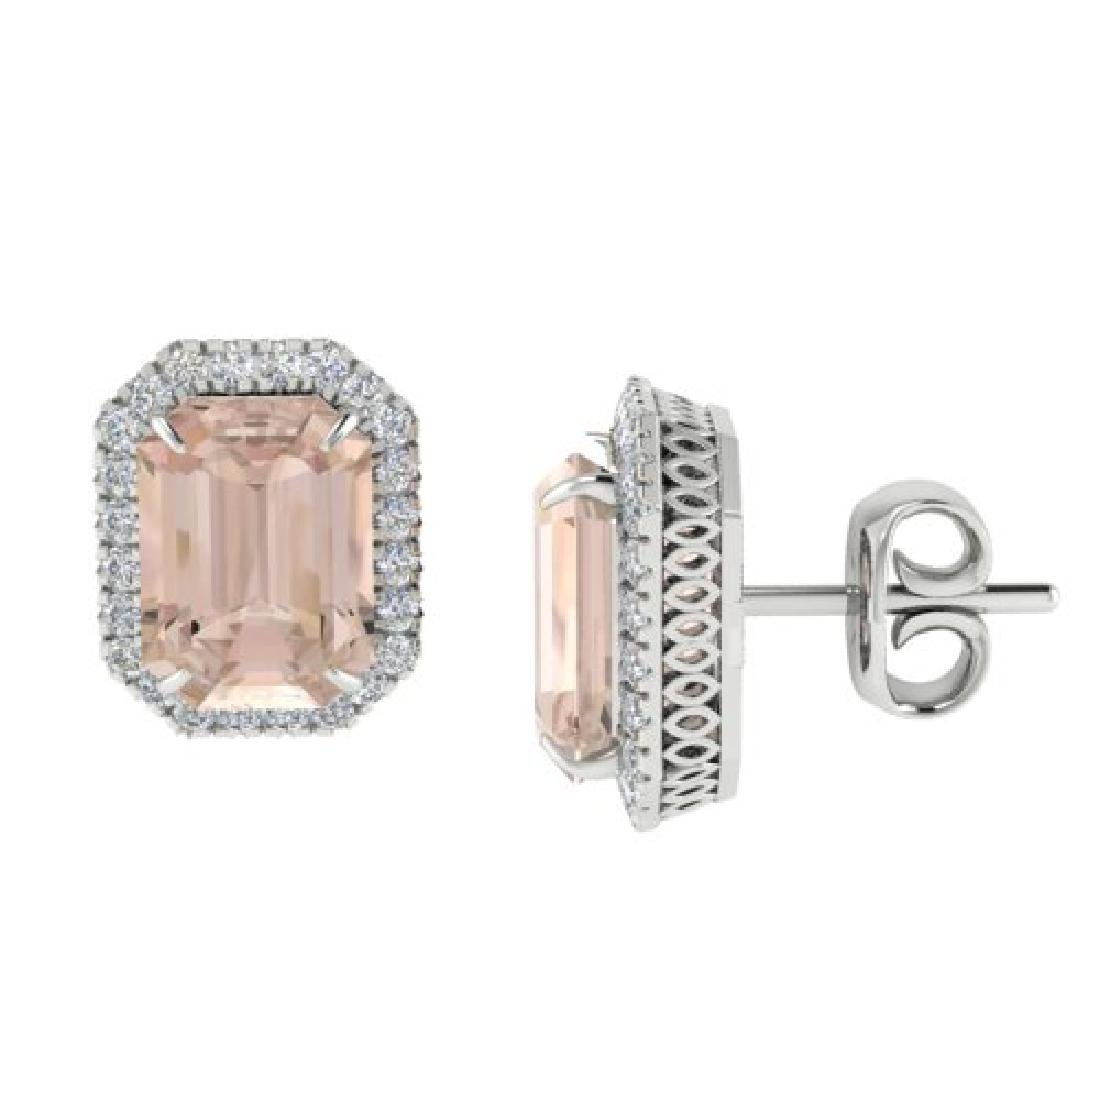 8.40 CTW Morganite & Micro Pave VS/SI Diamond Halo - 2